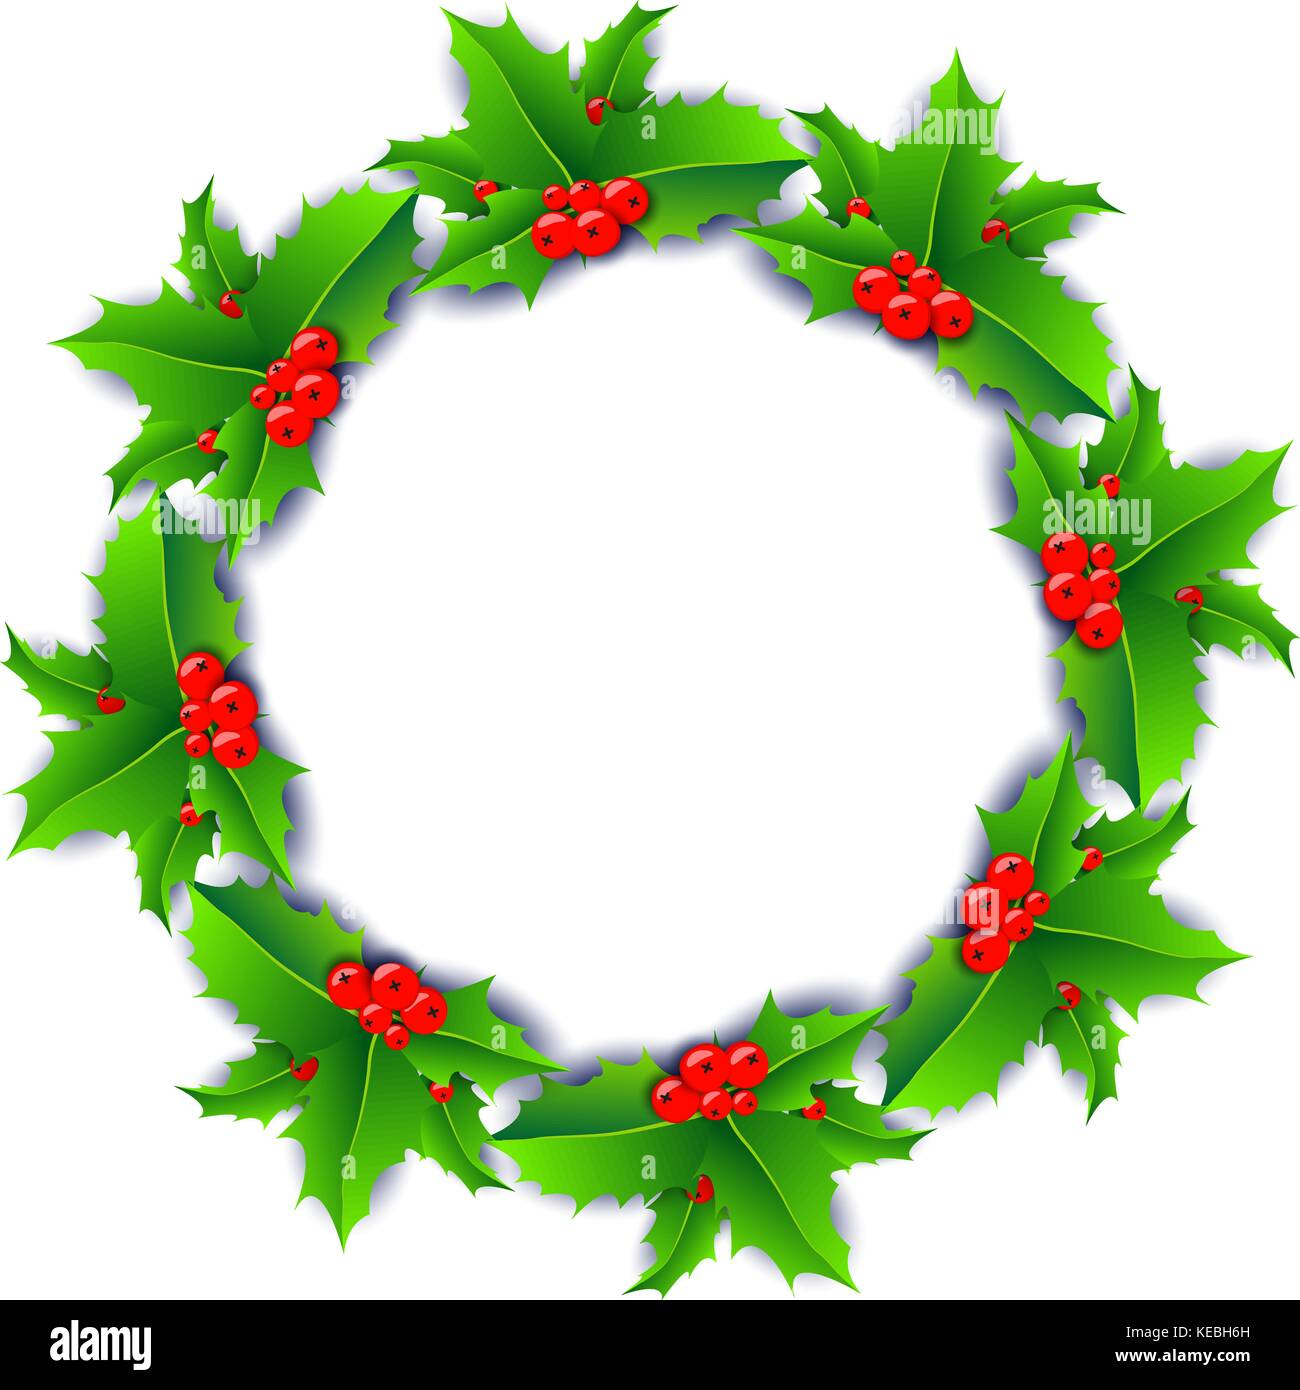 Christmas wreath poster with holly berries isolated on white background. - Stock Vector